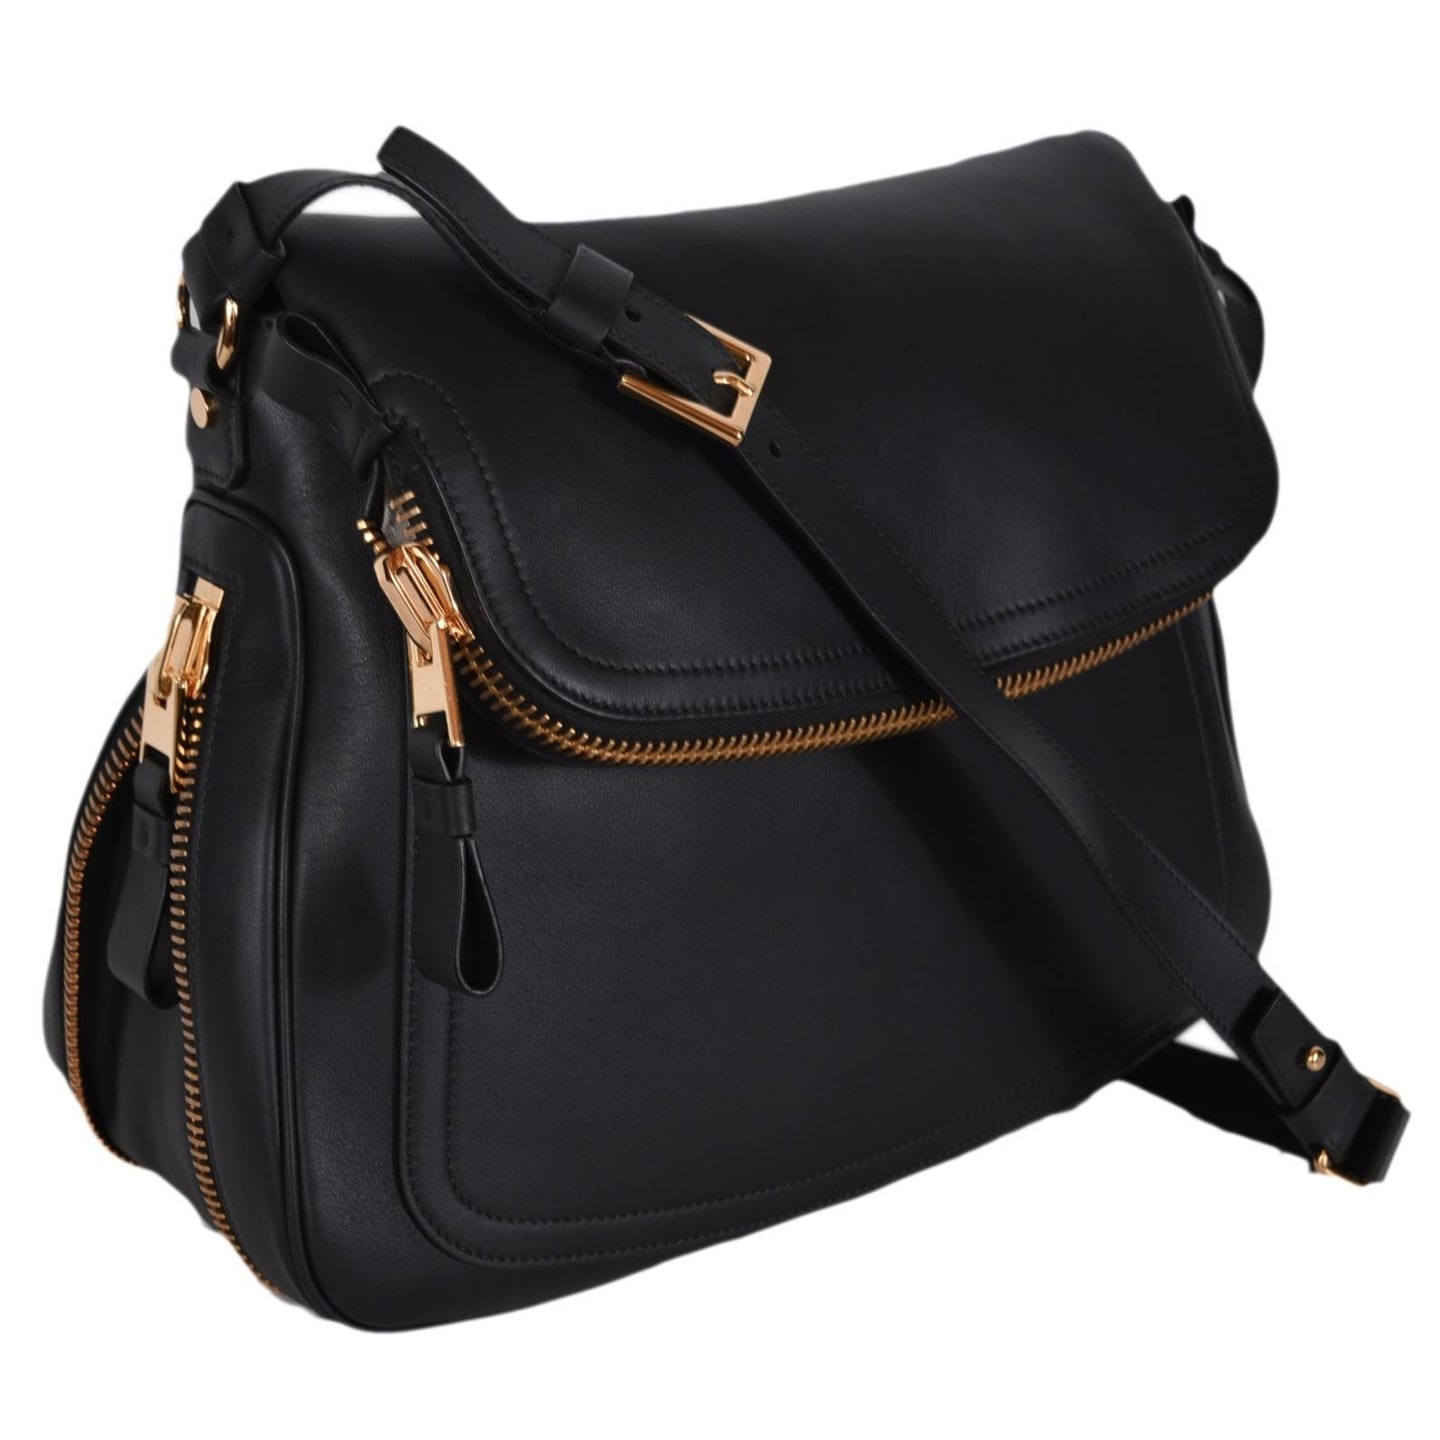 49a72d674 Shop Tom Ford Black Leather Large JENNIFER Crossbody Saddle Bag ...